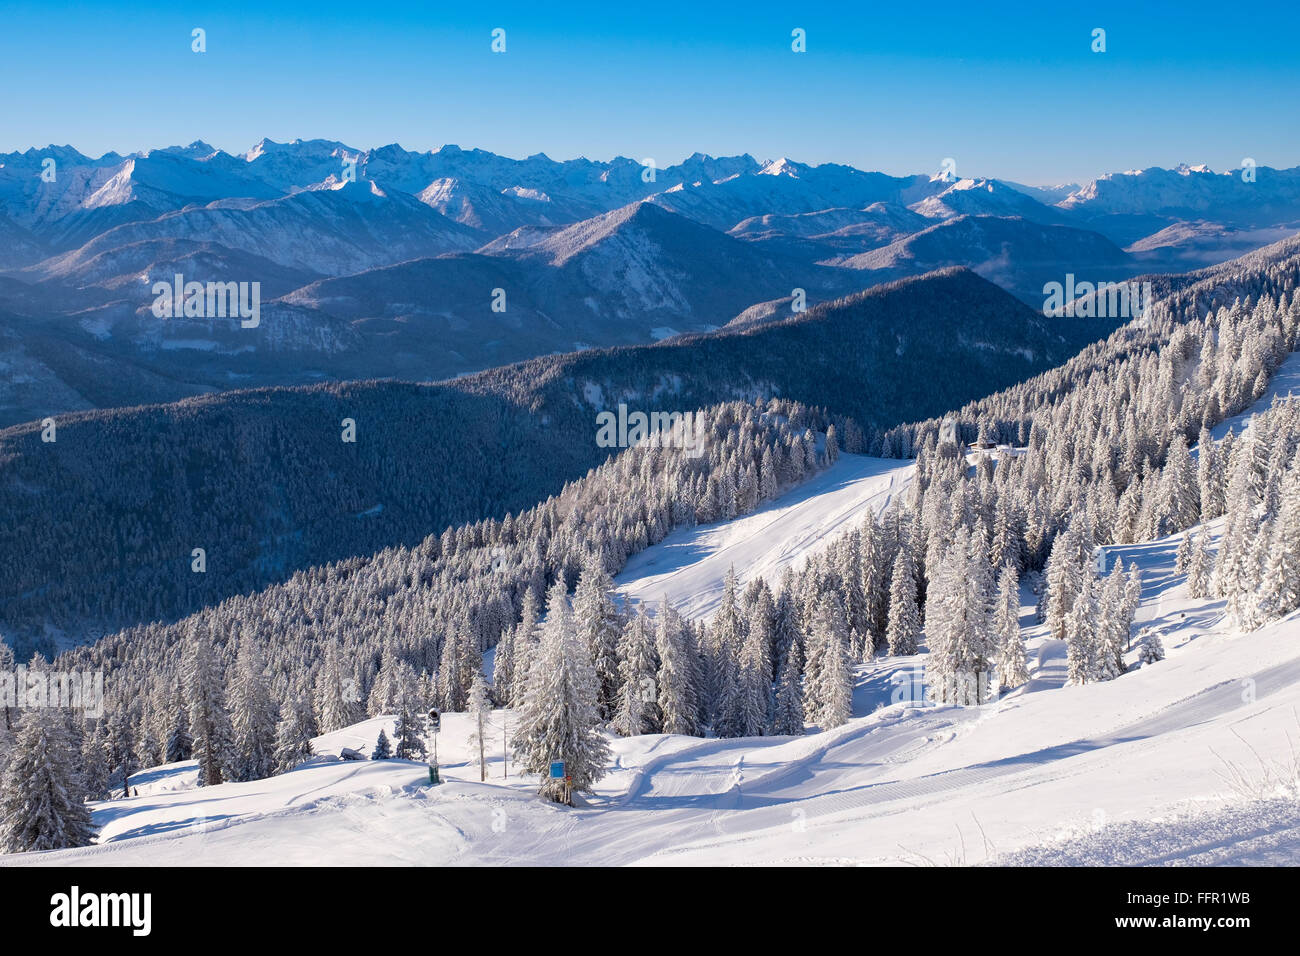 Ski resort Brauneck, view towards Karwendel, Lenggries, Isarwinkel, Bavarian Prealps, Upper Bavaria, Bavaria, Germany - Stock Image